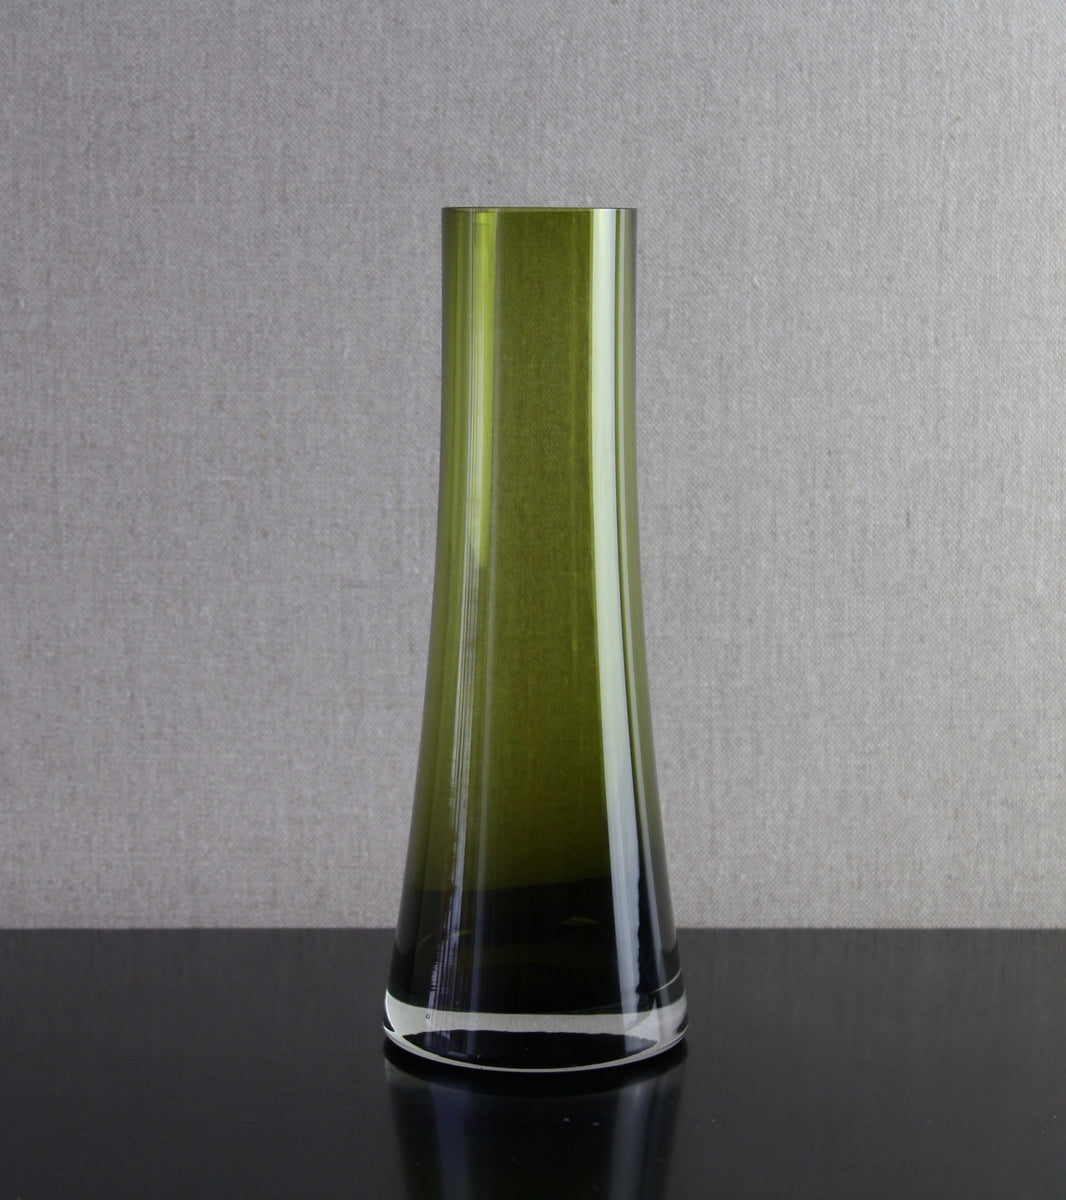 Olive Green Model 1368 Vase by Tamara Aladin, C. 1970